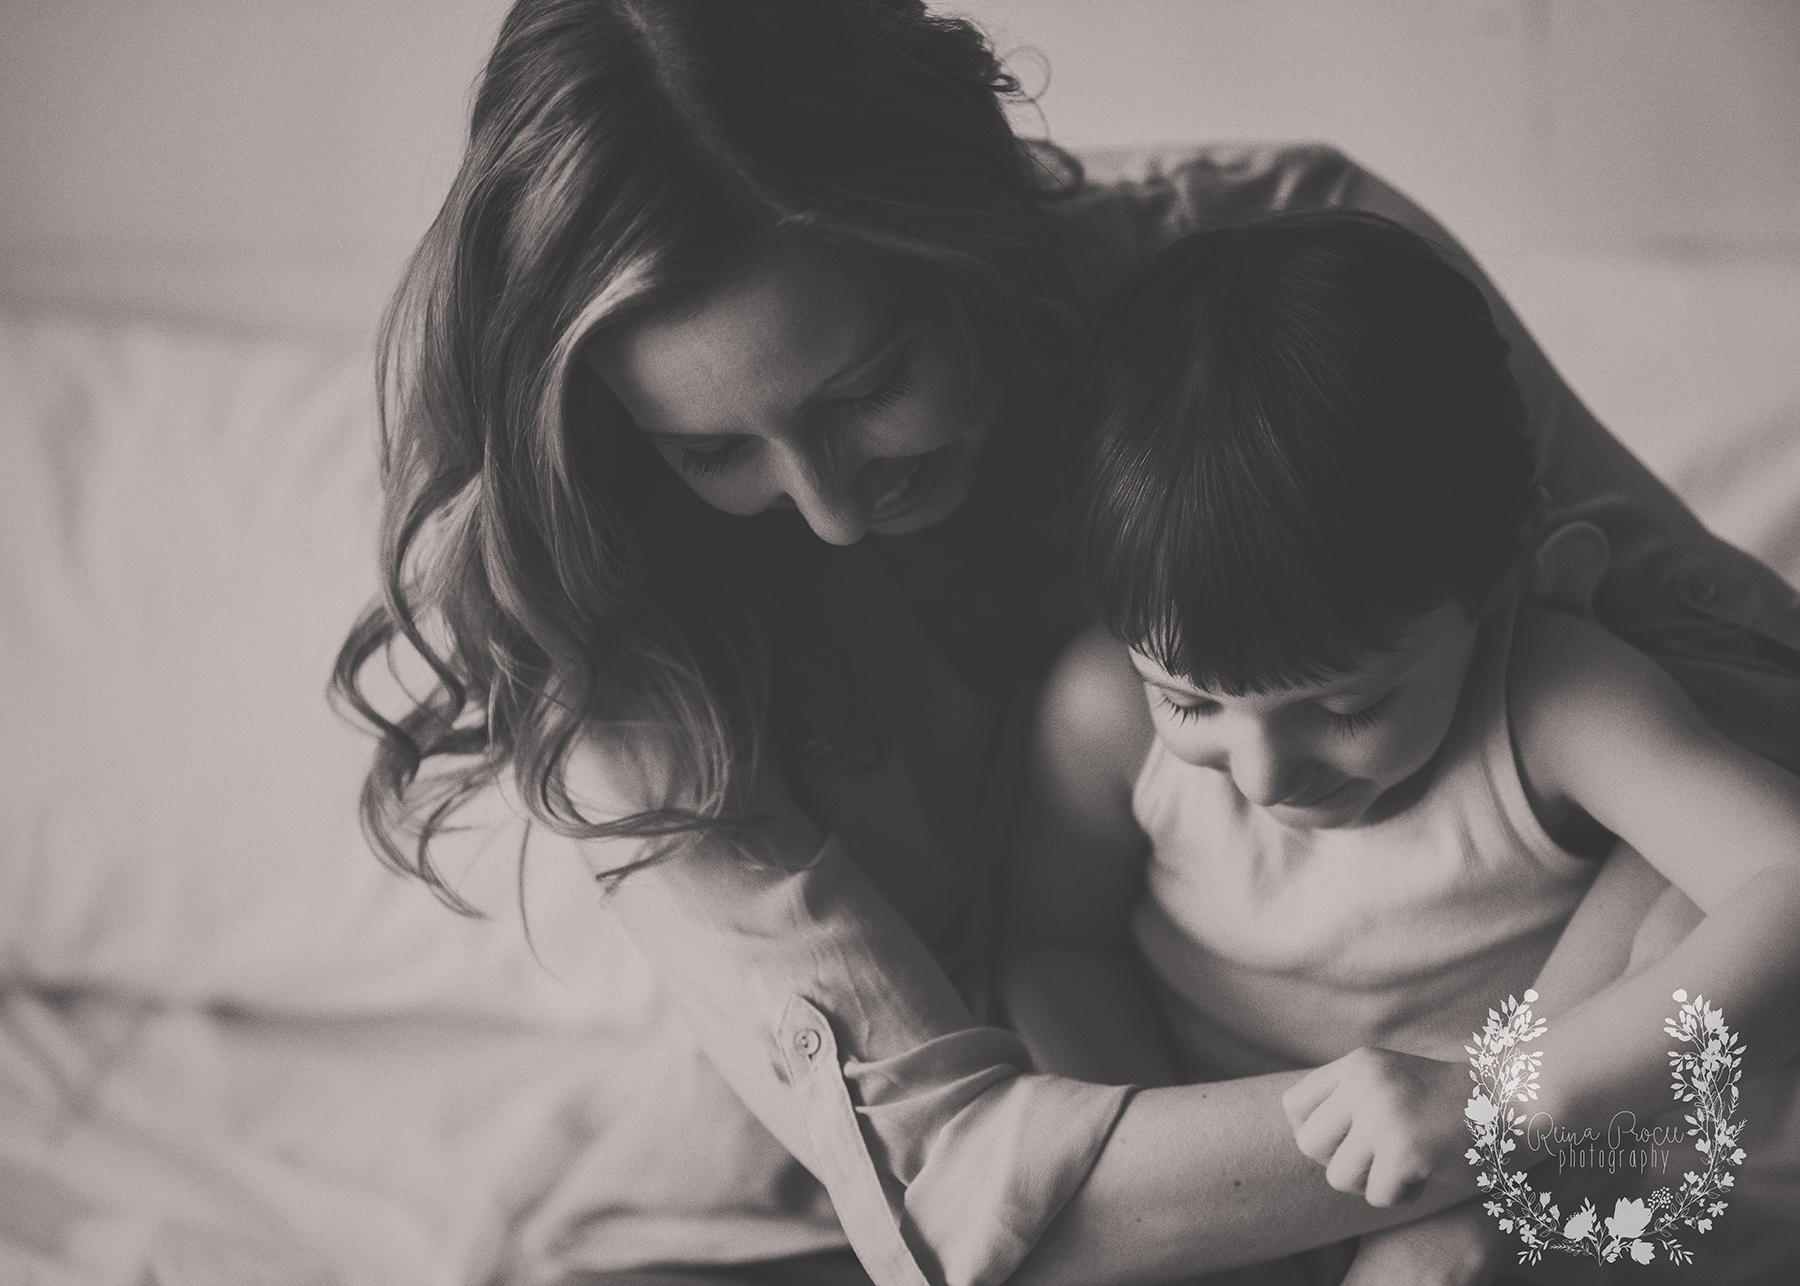 mother-child-love-family-portraits-montreal-photographer07.png